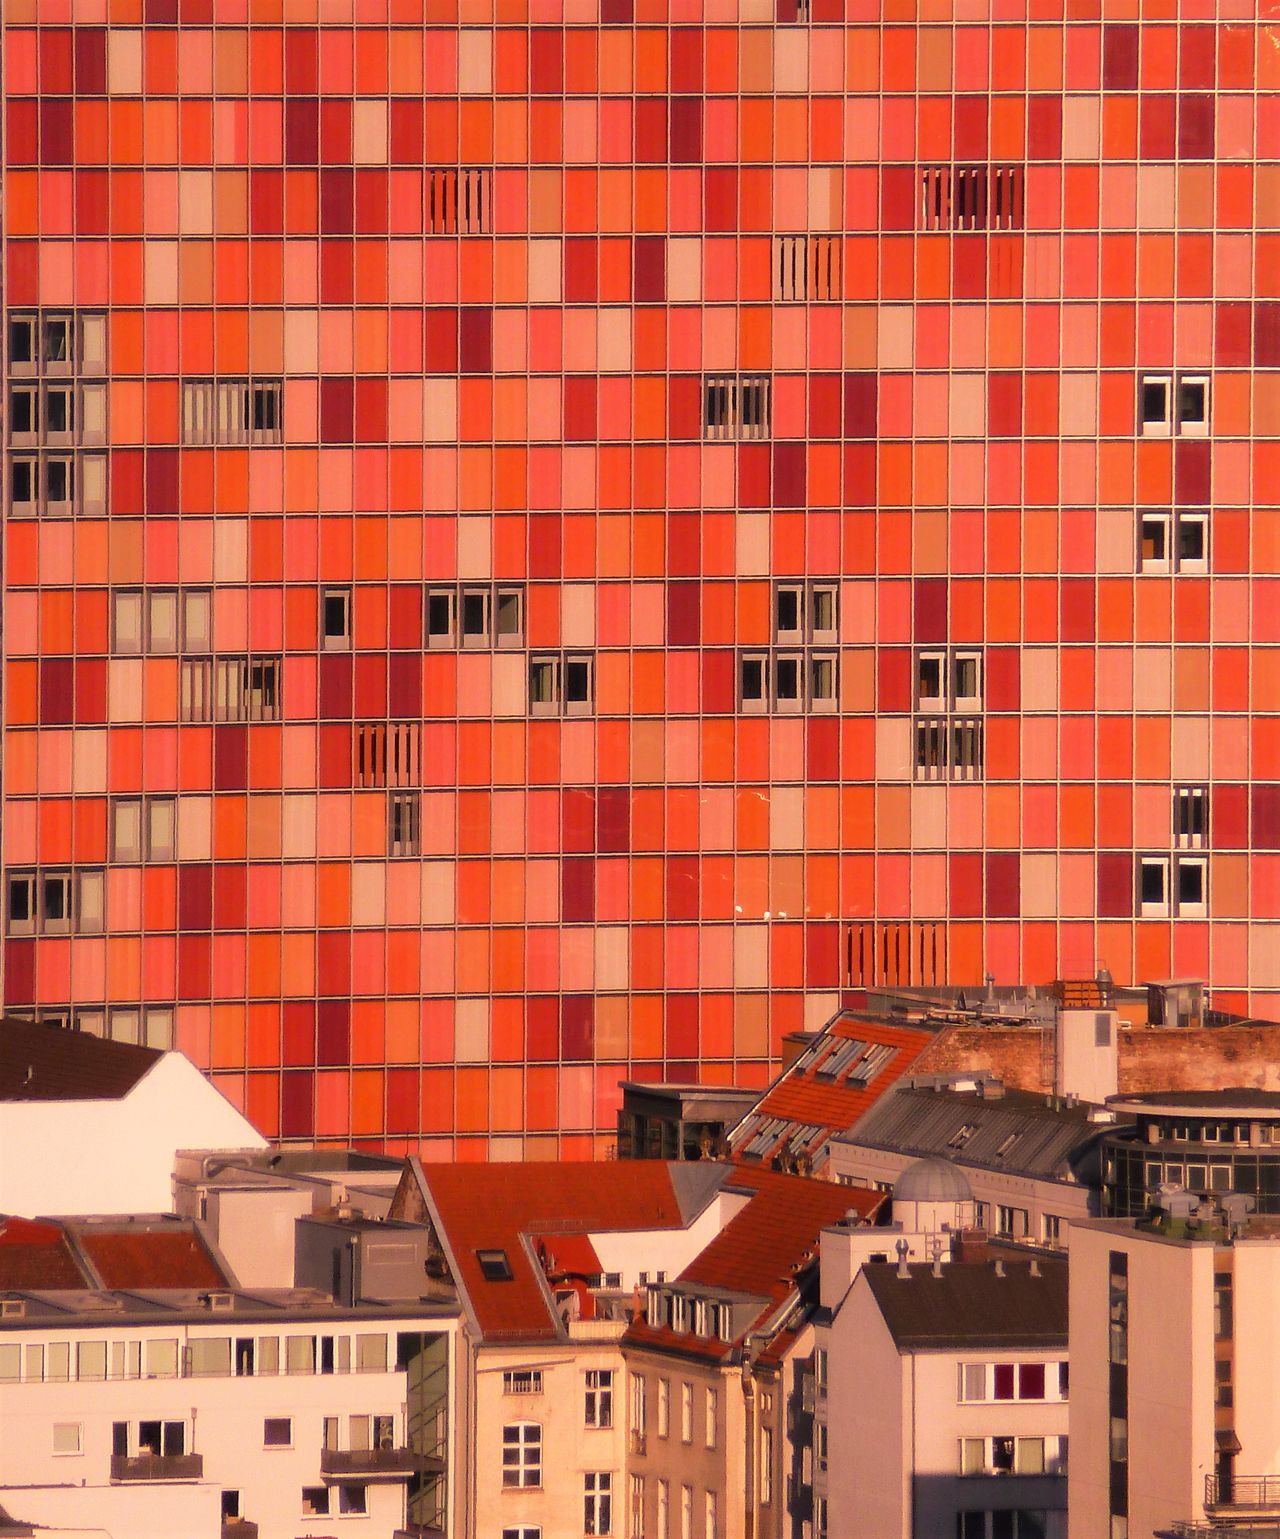 Apartment Architecture Building City Cityscapes Red Residential Building Residential Structure Side By Side The Architect - 2016 EyeEm Awards EyeEm Best Shots EyeEm Best Edits Fine Art Eye For Detail Showcase June Fine Art Photography Home Is Where The Art Is Colour Of Life A Bird's Eye View TakeoverContrast Capture Berlin The Architect - 2017 EyeEm Awards